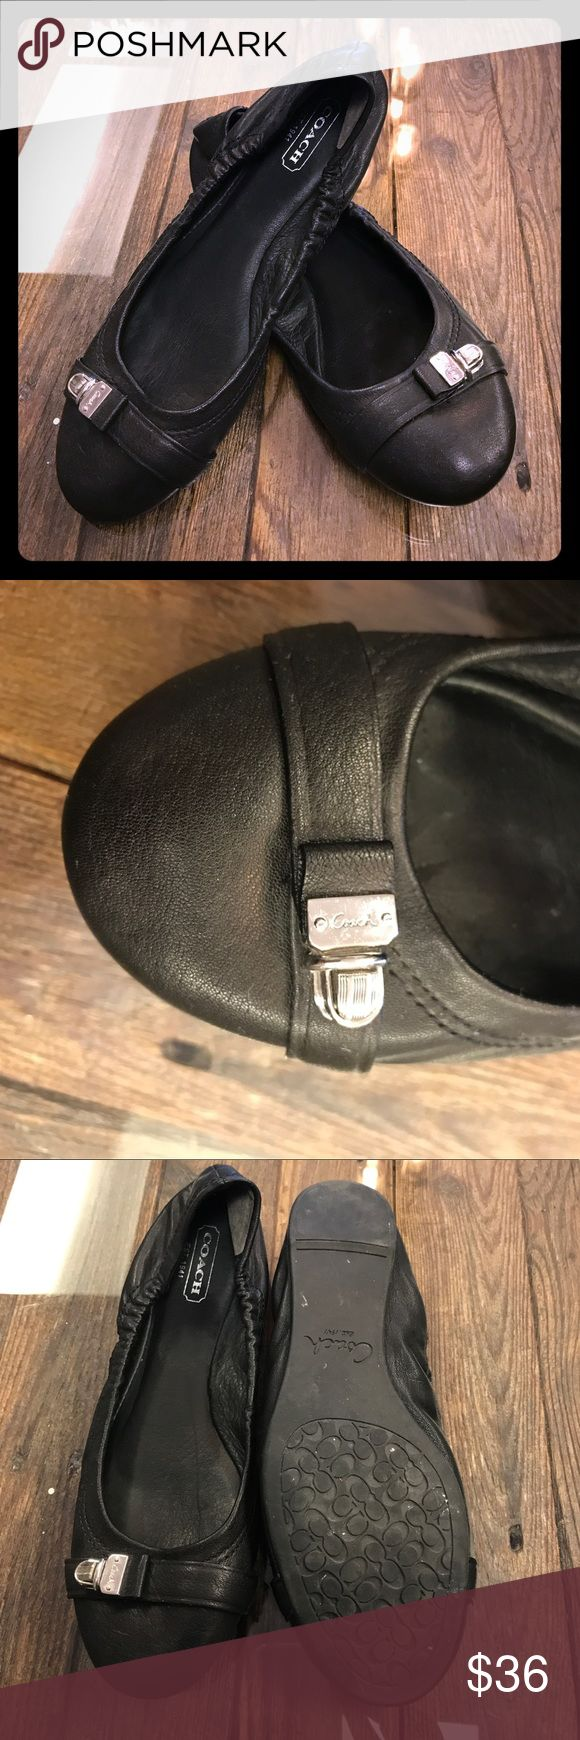 BLACK COACH FLATS Black Coach flat with silver buckle on toe with coach name. Worn a few times and in good condition Coach Shoes Flats & Loafers